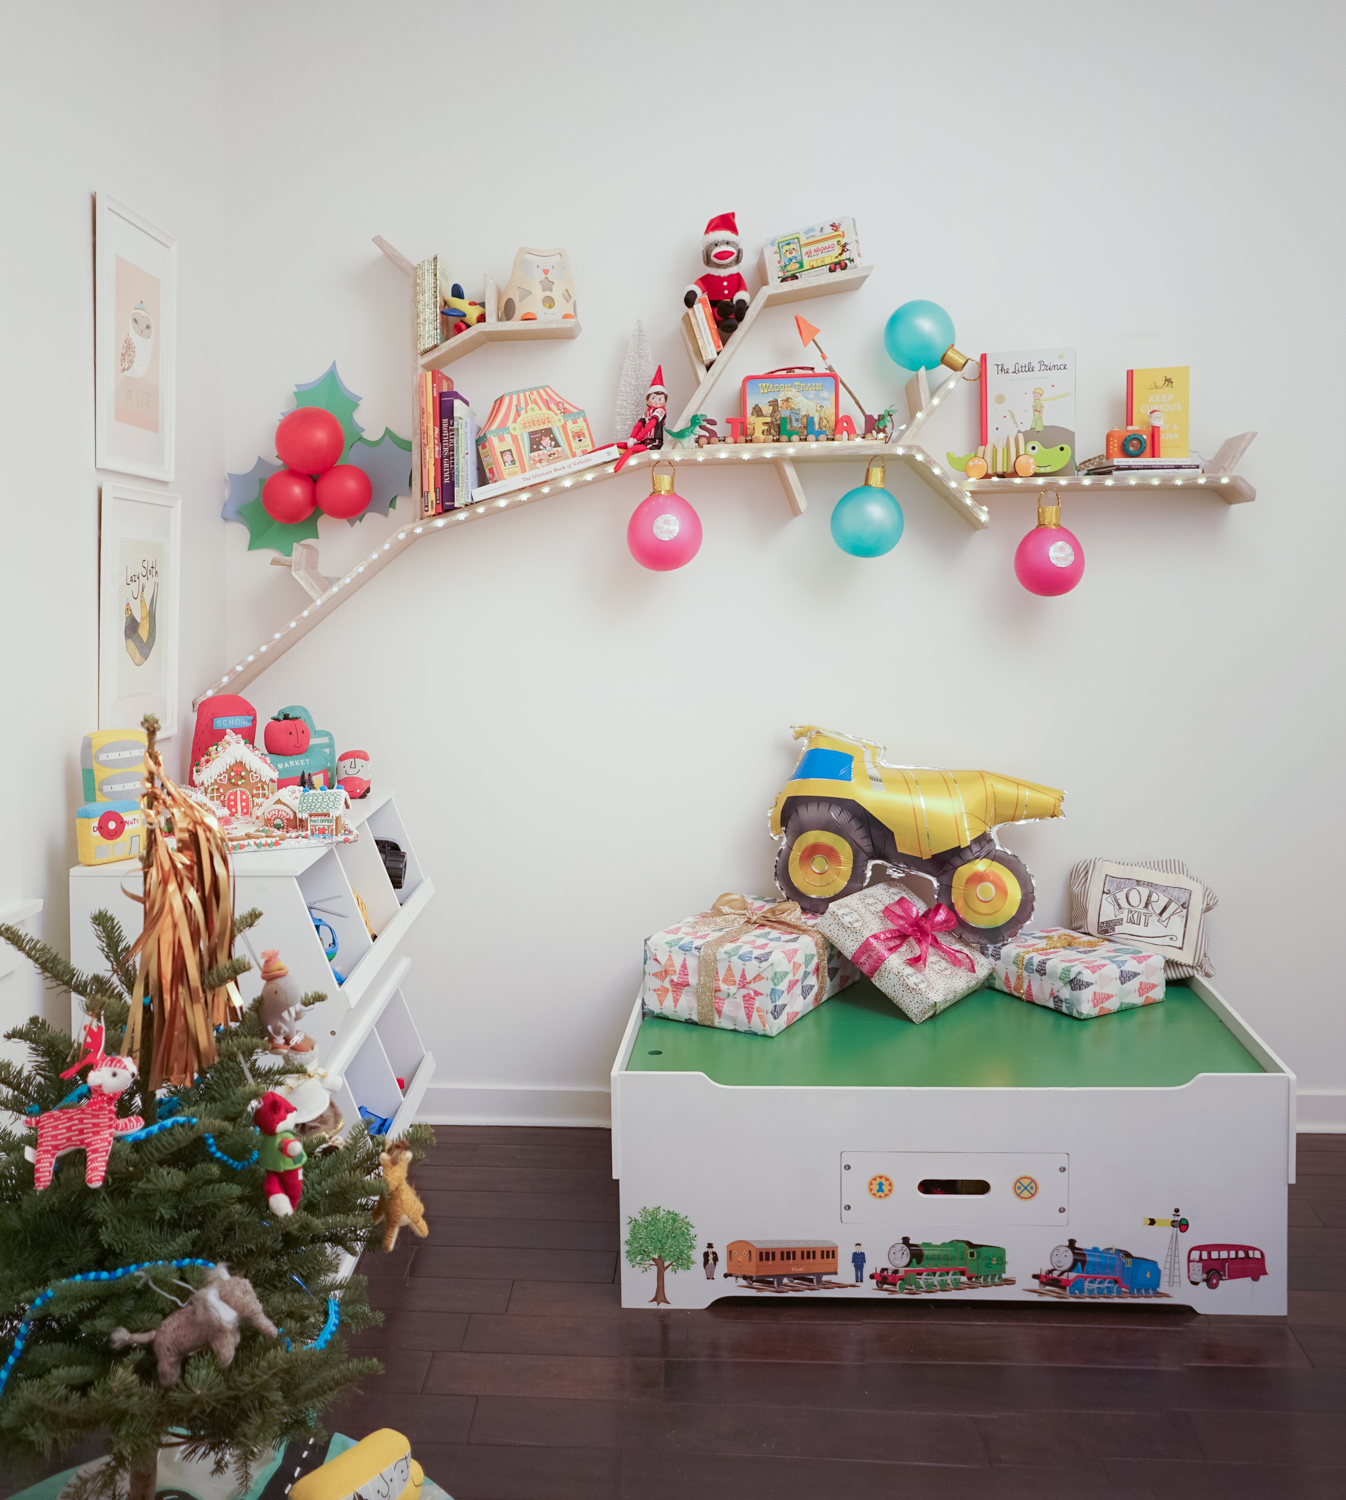 Playroom Decorated for Christmas